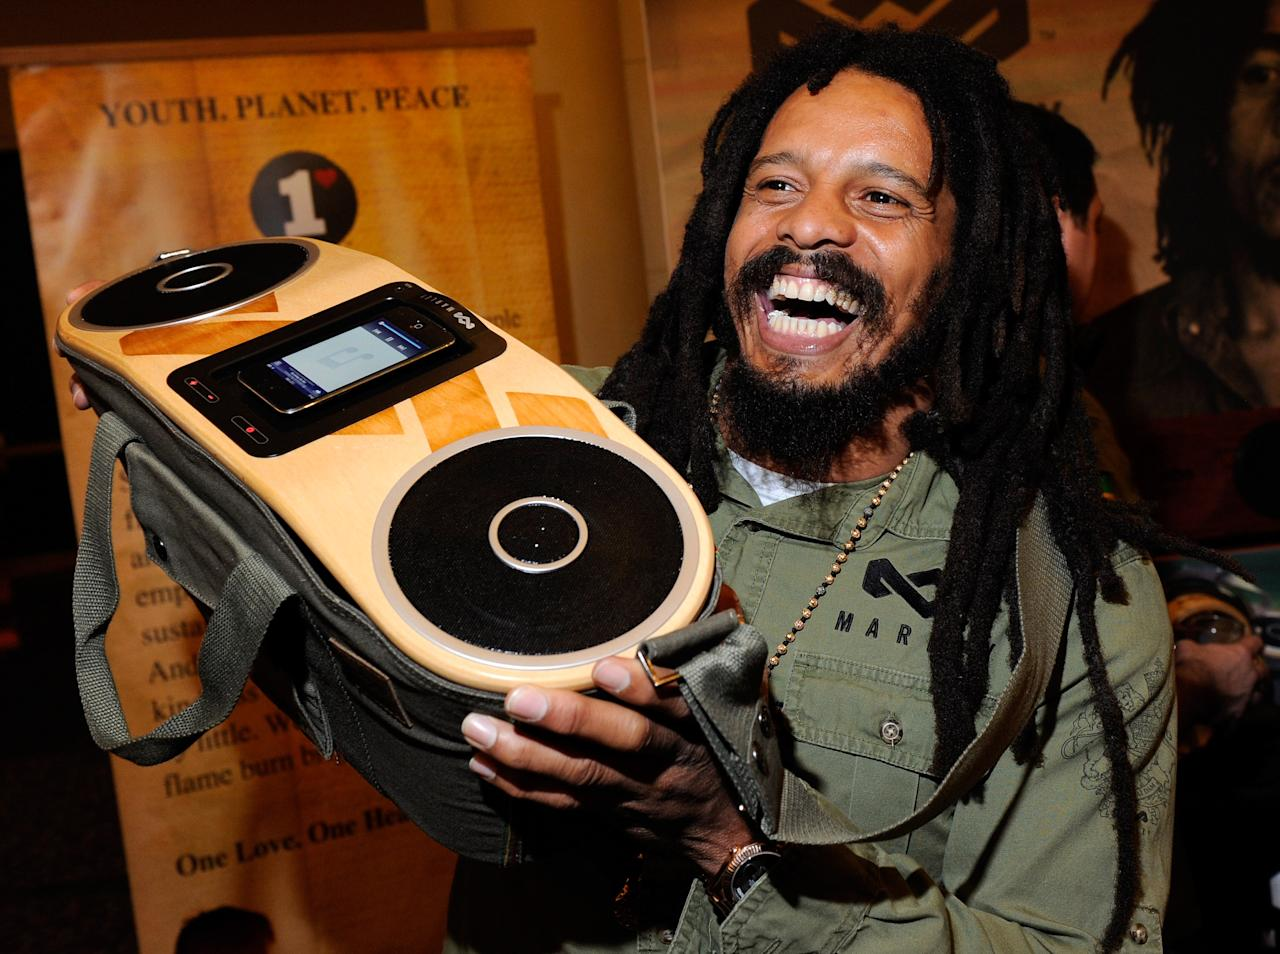 LAS VEGAS, NV - JANUARY 08:  Rohan Marley, son of late Reggae musician Bob Marley, displays the USD 249 Bag of Rhythm audio player with docking station for iPhones and iPods from House of Marley during a press event at The Venetian for the 2012 International Consumer Electronics Show (CES) January 8, 2012 in Las Vegas, Nevada. CES, the world's largest annual consumer technology trade show, runs from January 10-13 and is expected to feature 2,700 exhibitors showing off their latest products and services to about 140,000 attendees.  (Photo by Ethan Miller/Getty Images)